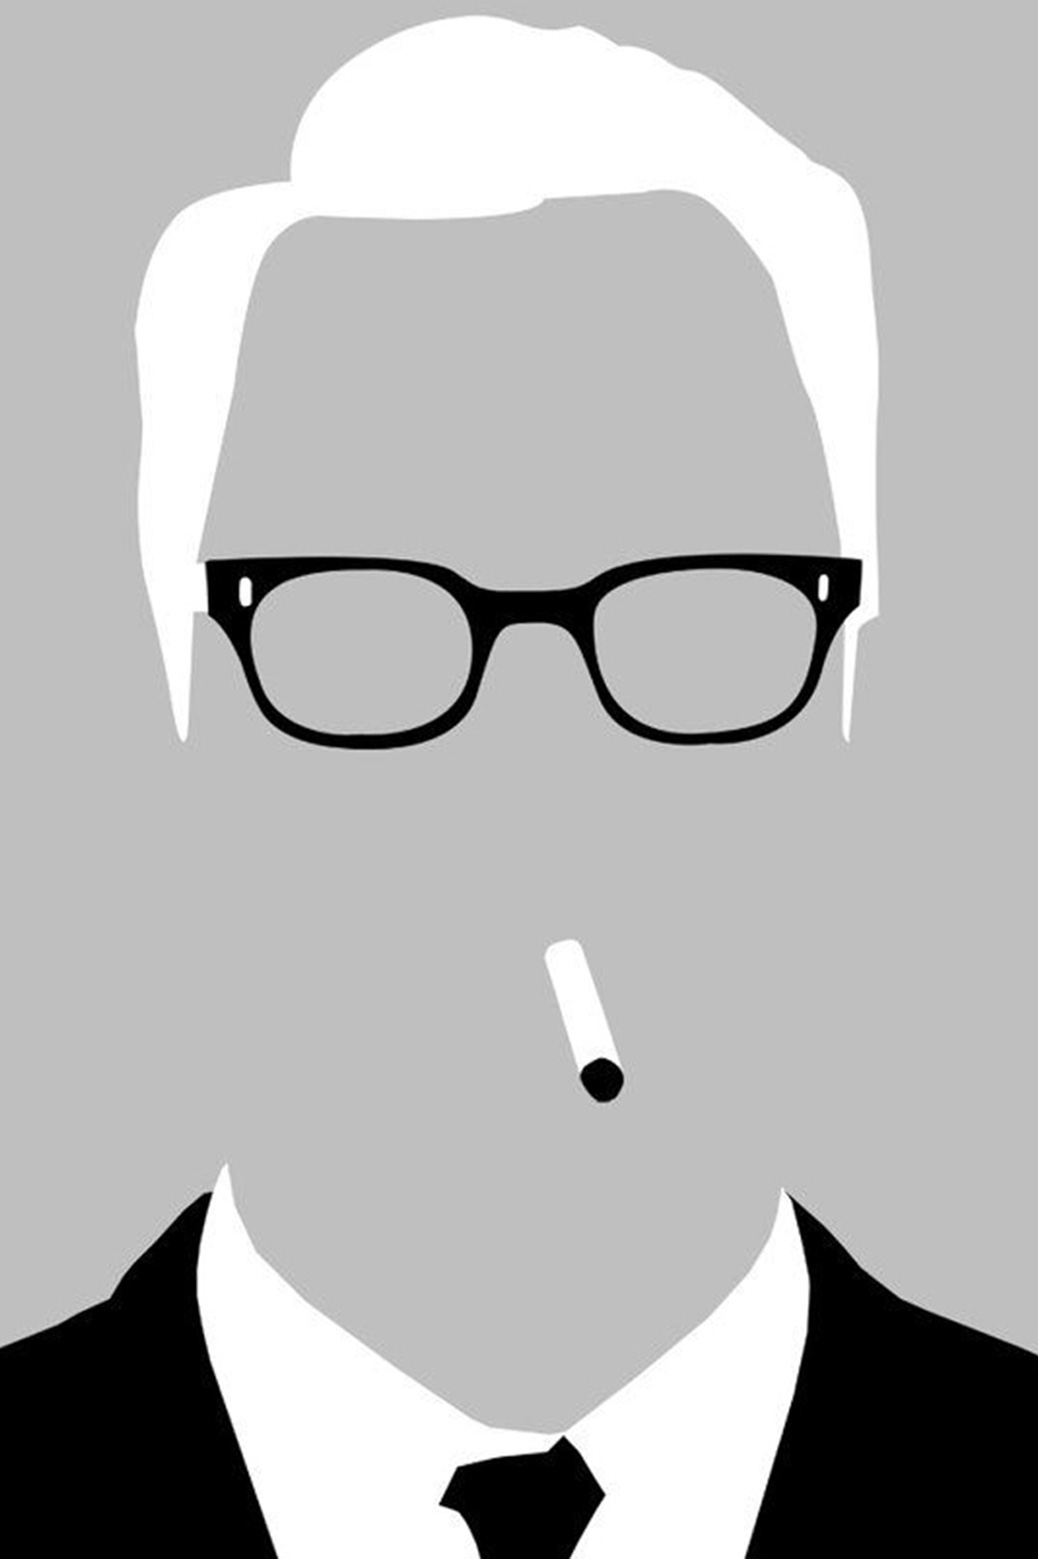 Vector Illustration of a man's portrait